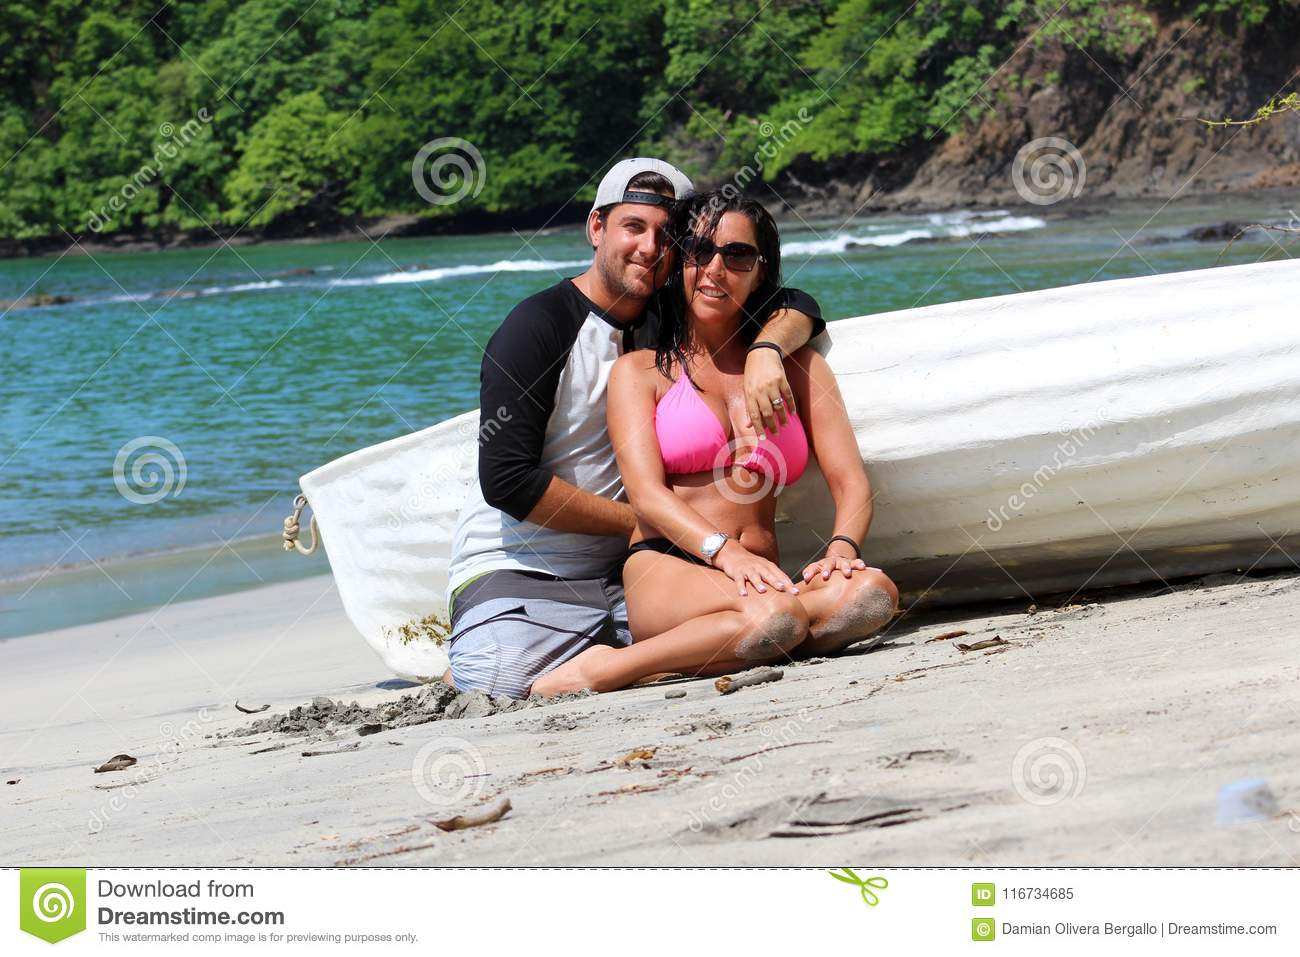 Beautiful couple at the beach with a boat, happy expressions gorgeous woman and latin guy at Costa Rica.